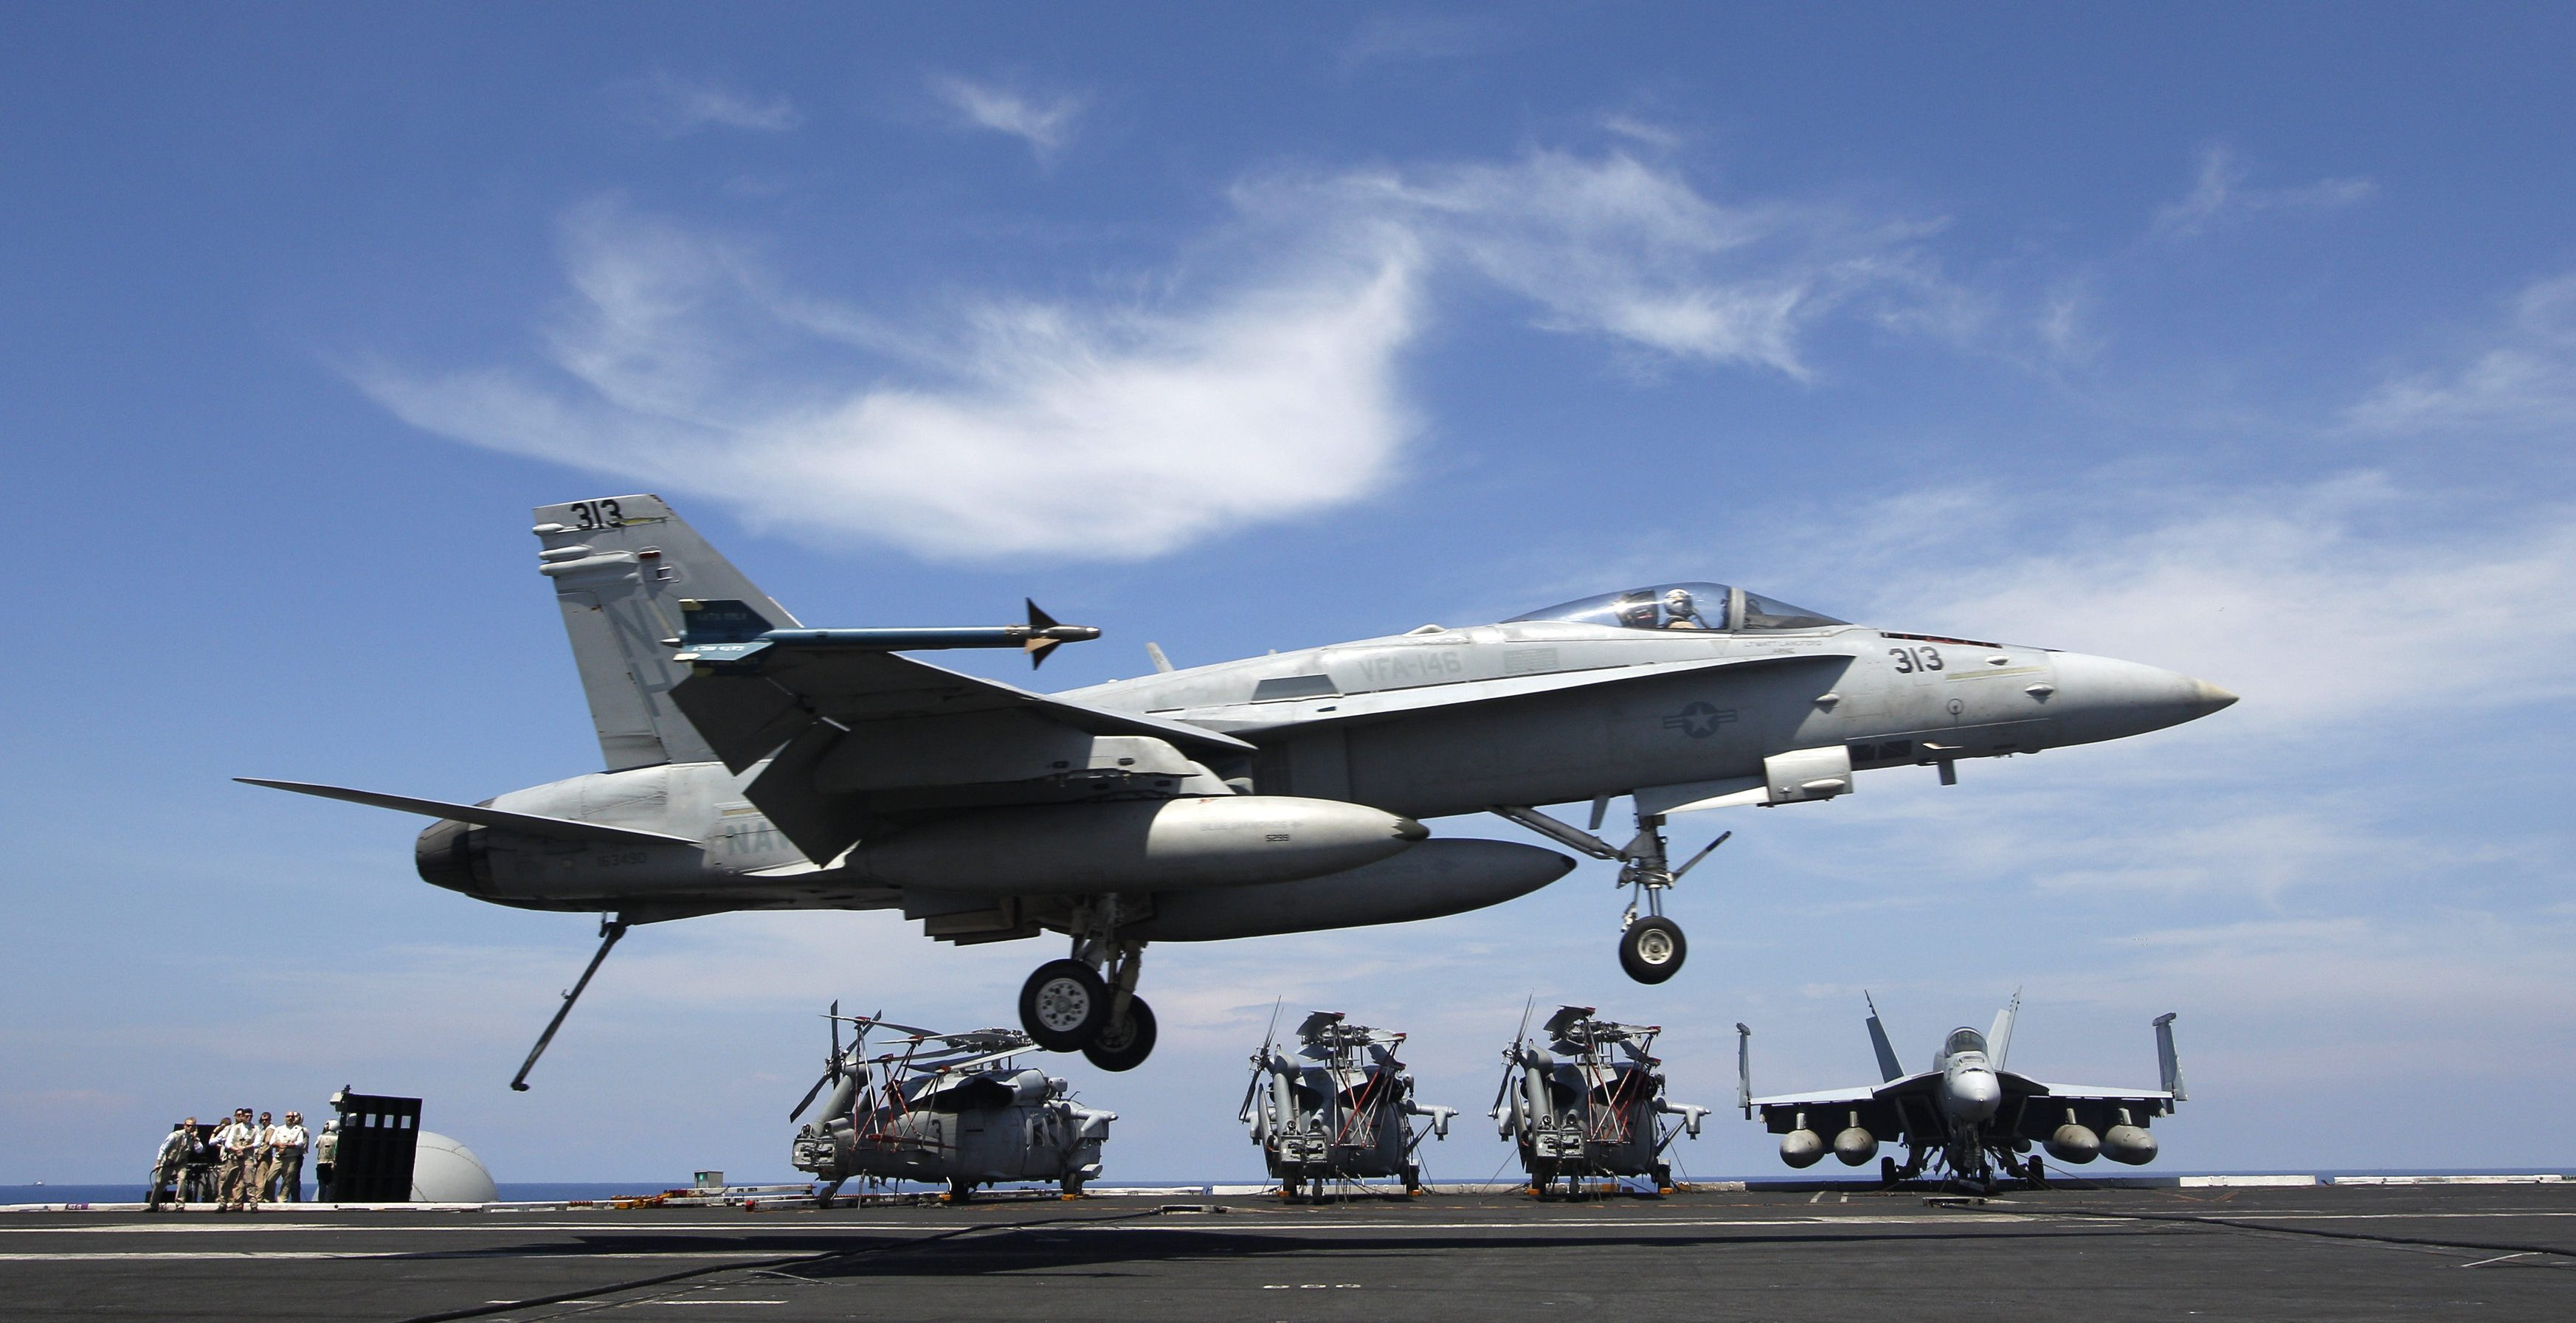 US Navy F/A-18C aircraft prepares to land on the runway of the USS Nimitz aircraft carrier during a tour of the ship in the South China Sea